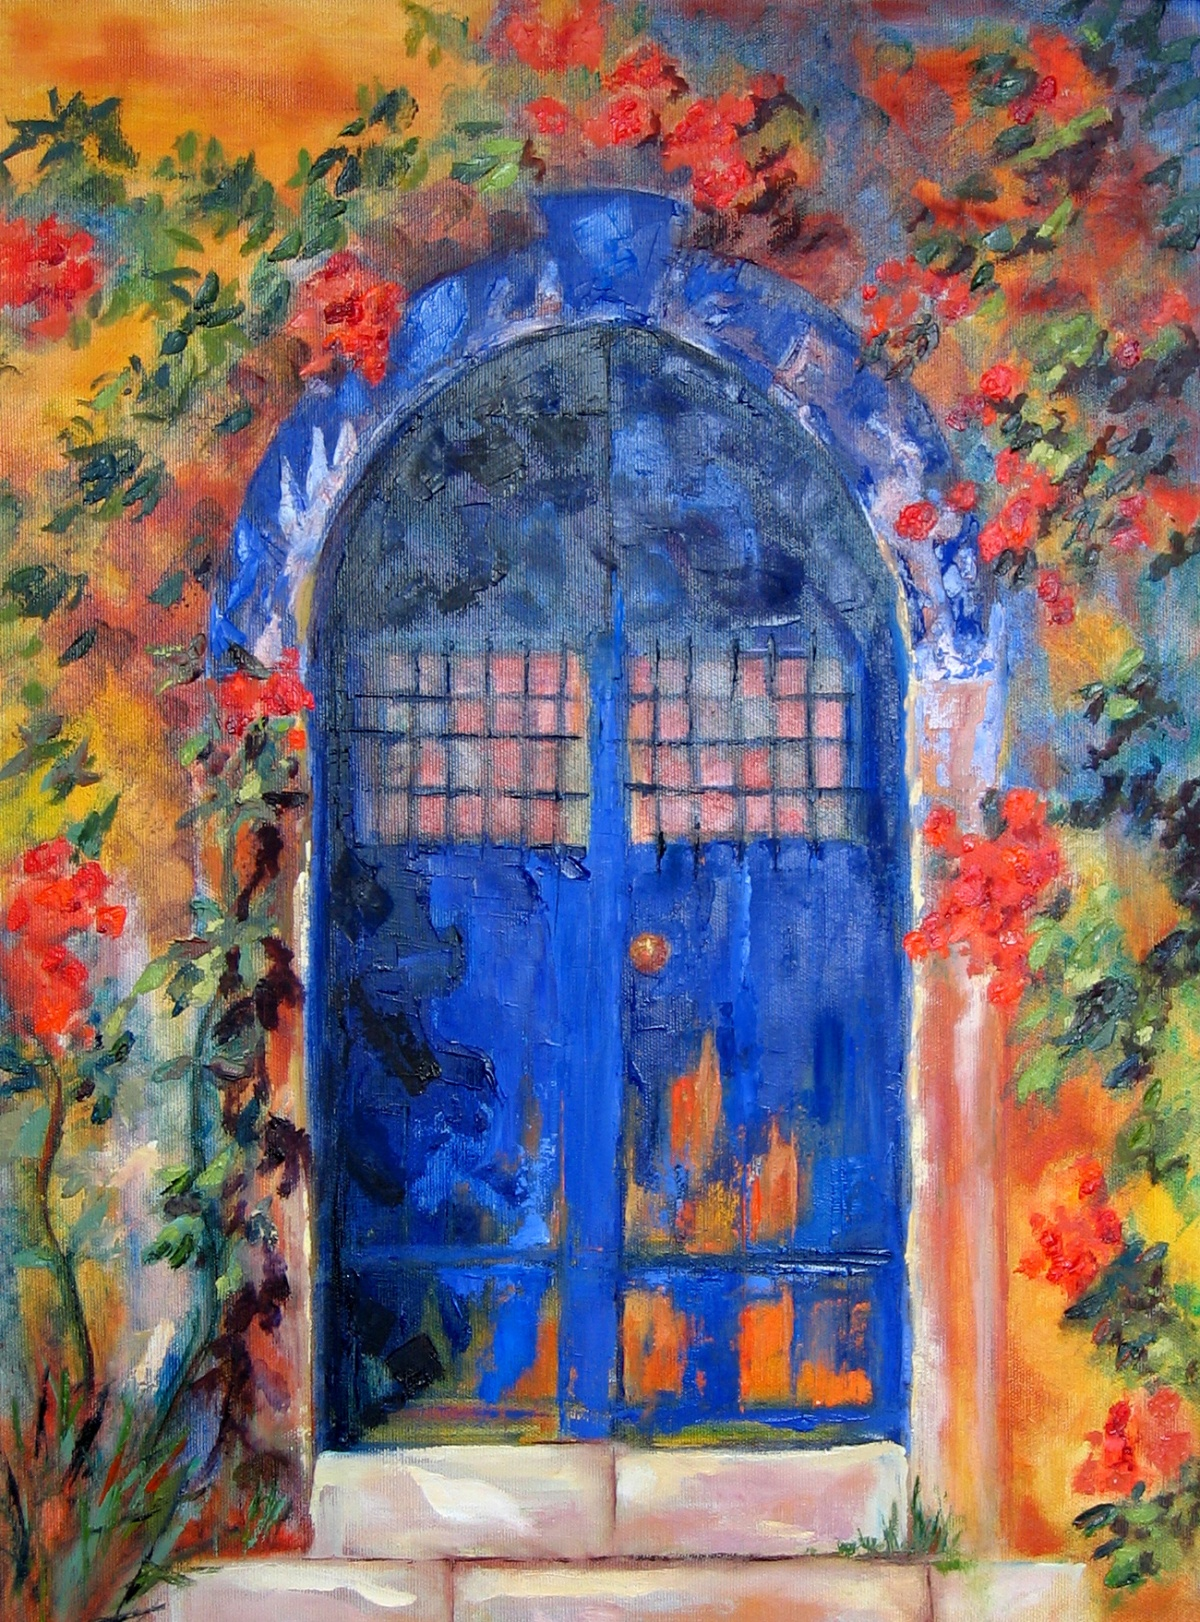 mallorca-door-oil-on-canvas-46cm-x-60cm